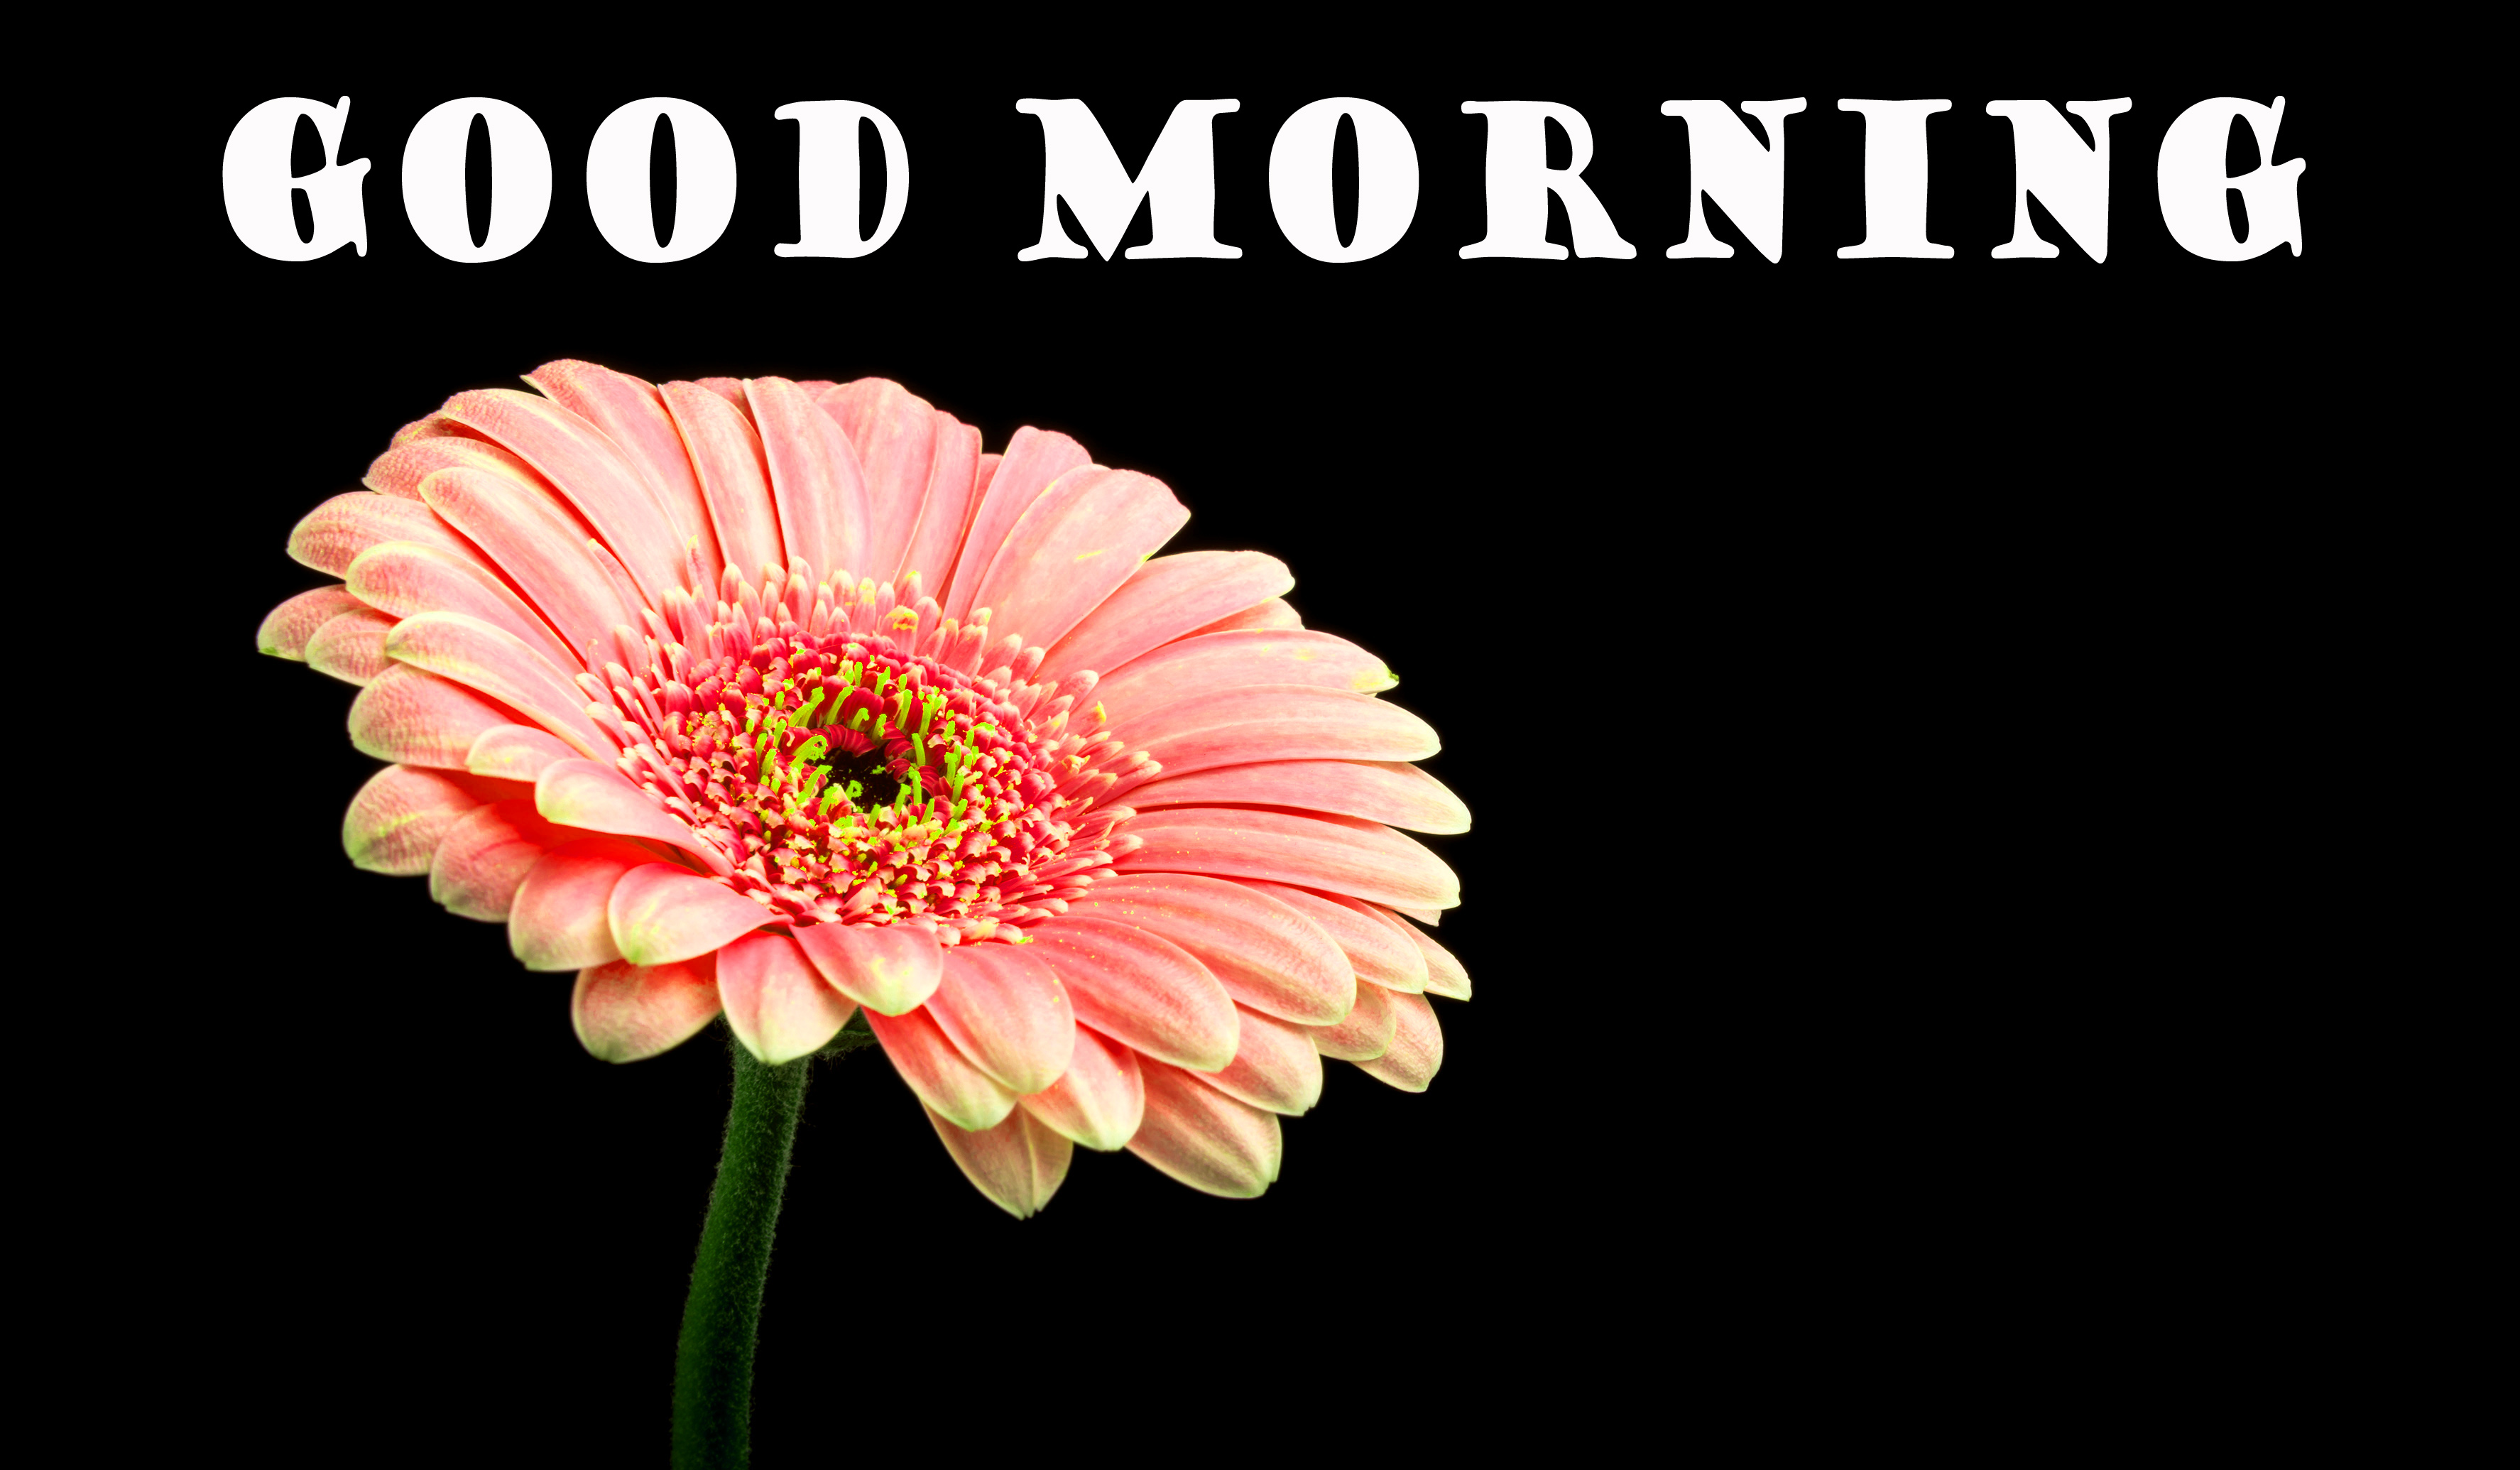 Good Morning Flowers Photo Wallpaper Pictures Download